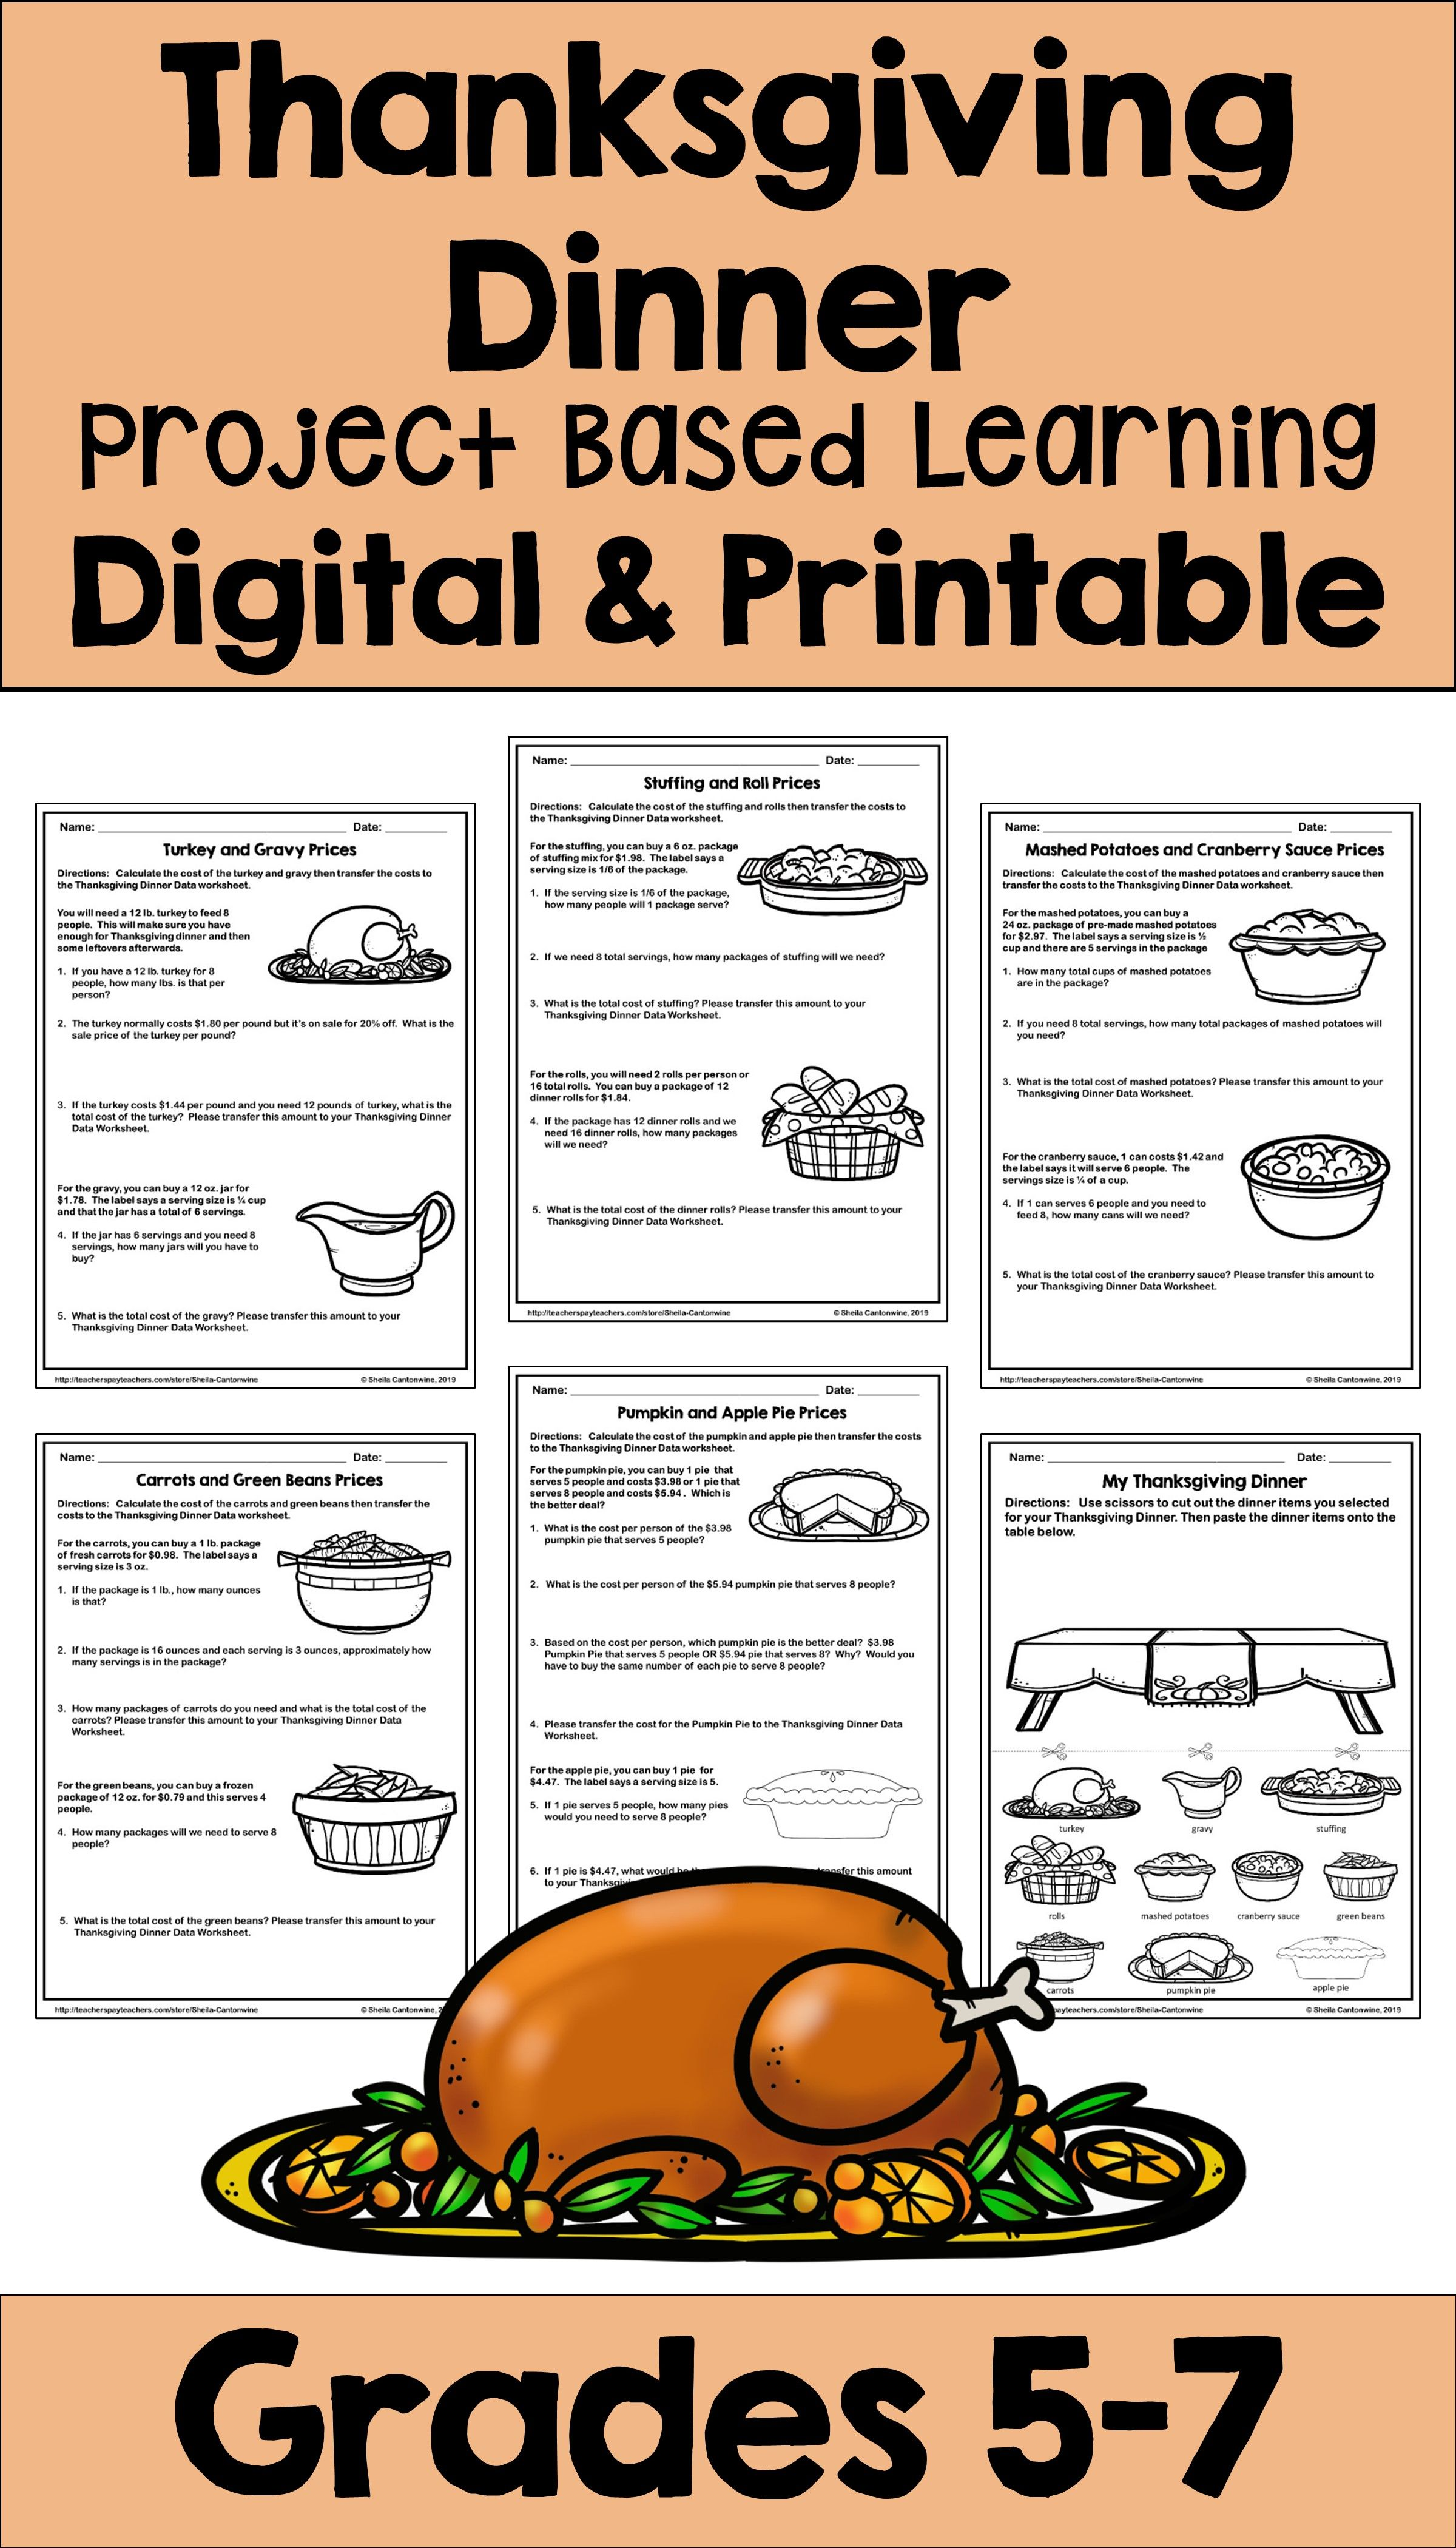 Thanksgiving Dinner Project Based Learning Pbl With Digital And Printable Options Project Based Learning Differentiation Math Fun Math Projects [ 4200 x 2400 Pixel ]